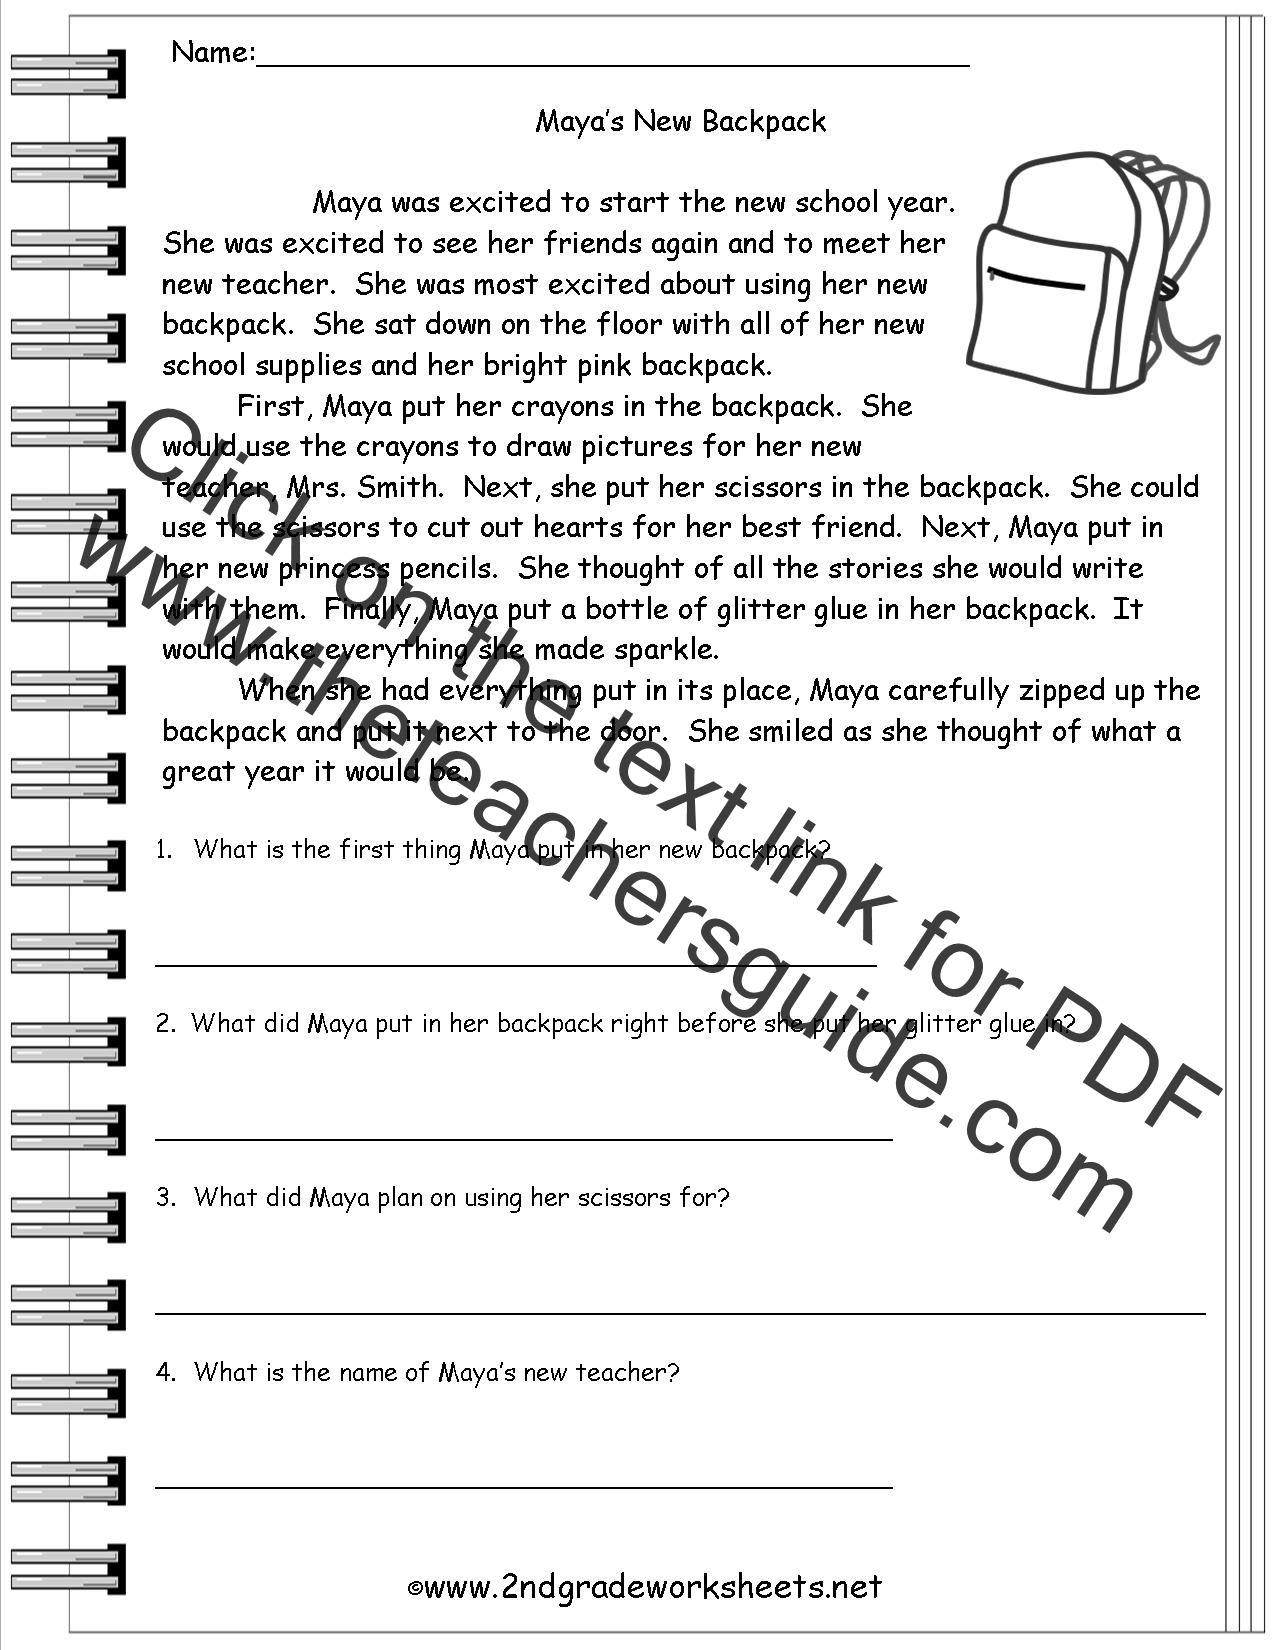 worksheet Reading Comprehension 2nd Grade Worksheets reading worksheeets worksheets